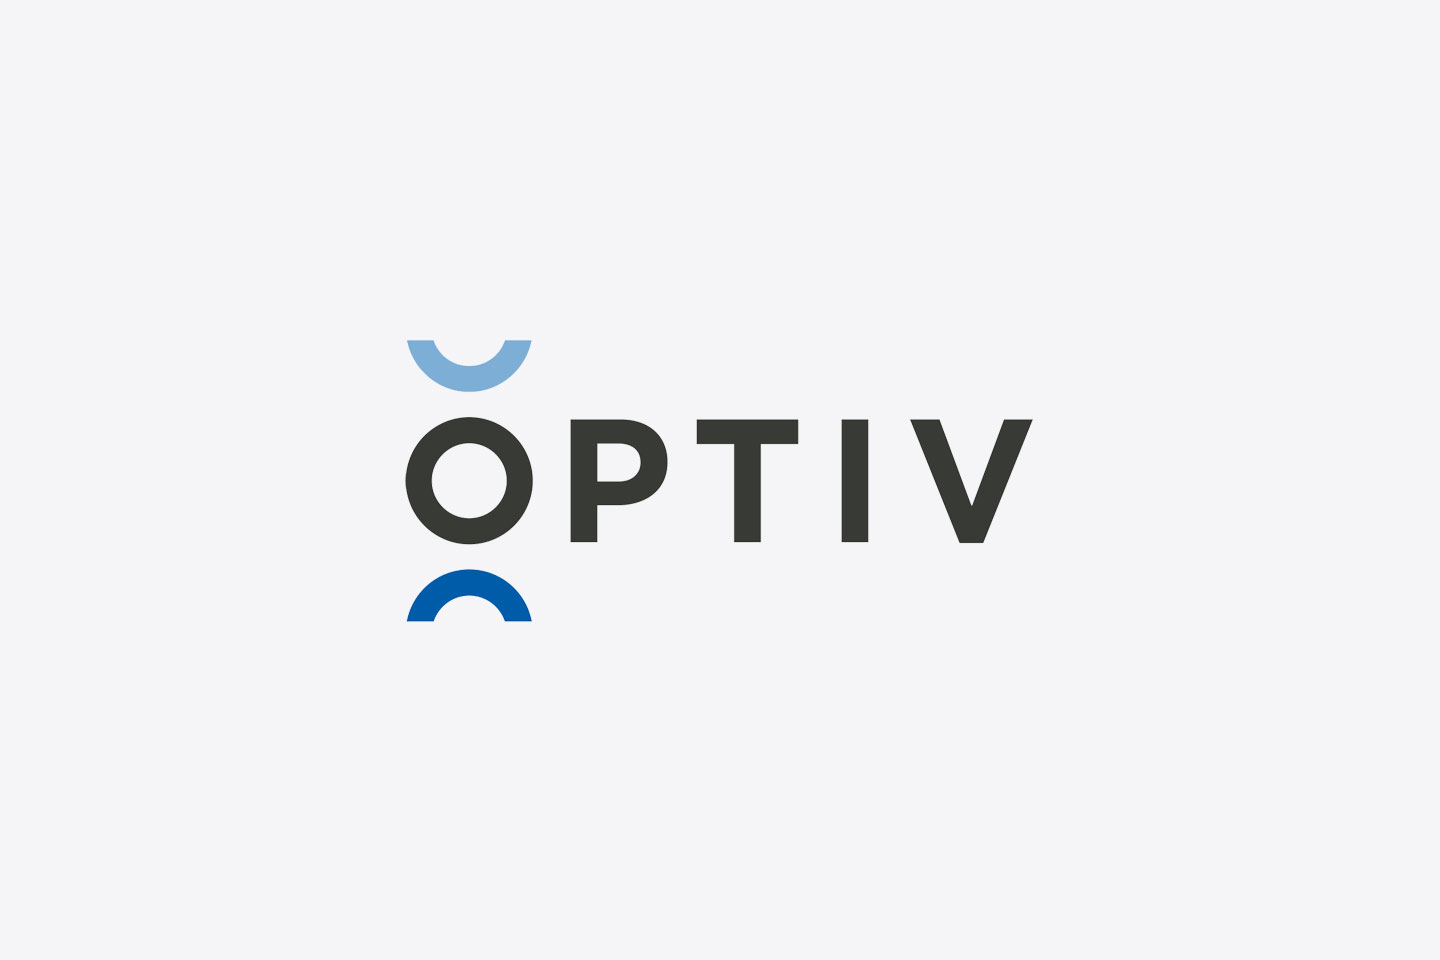 Fallstudie: Optiv